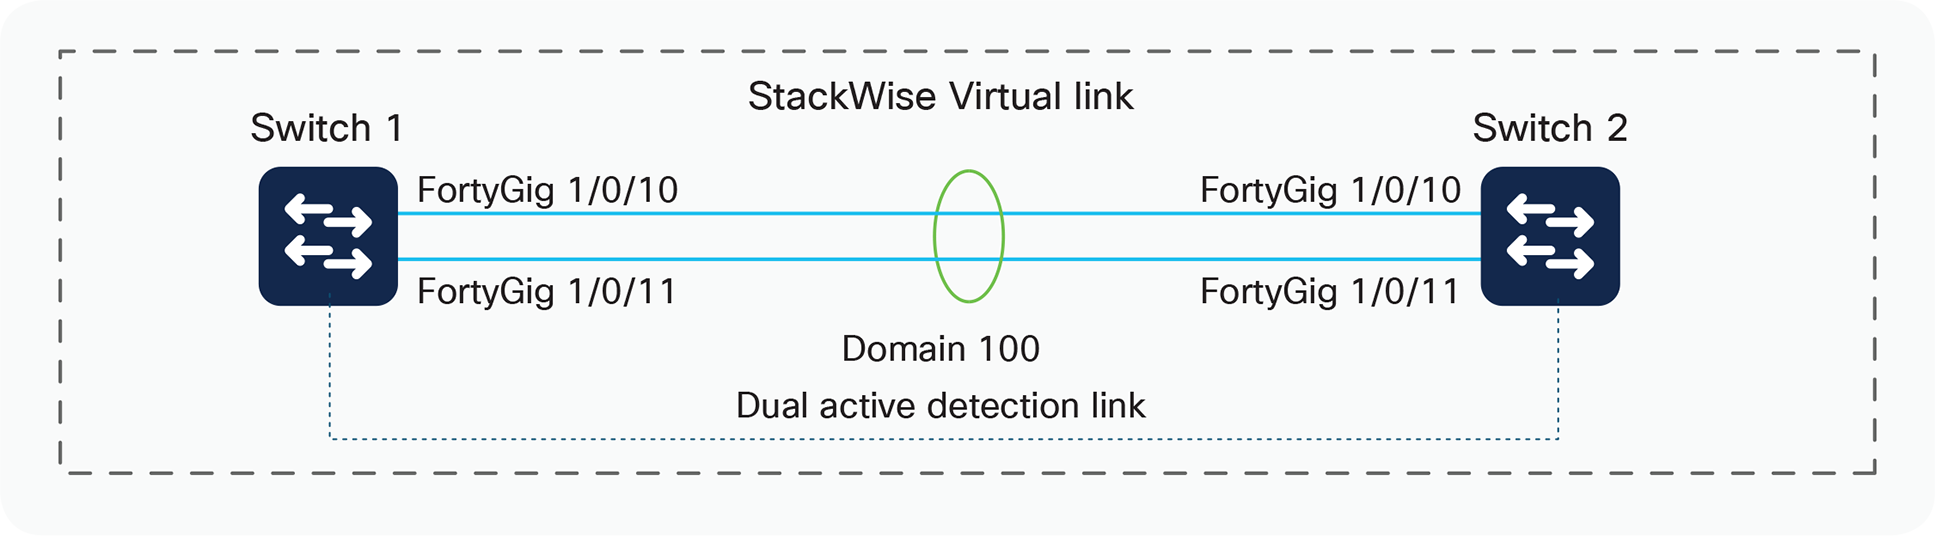 StackWise Virtual conversion